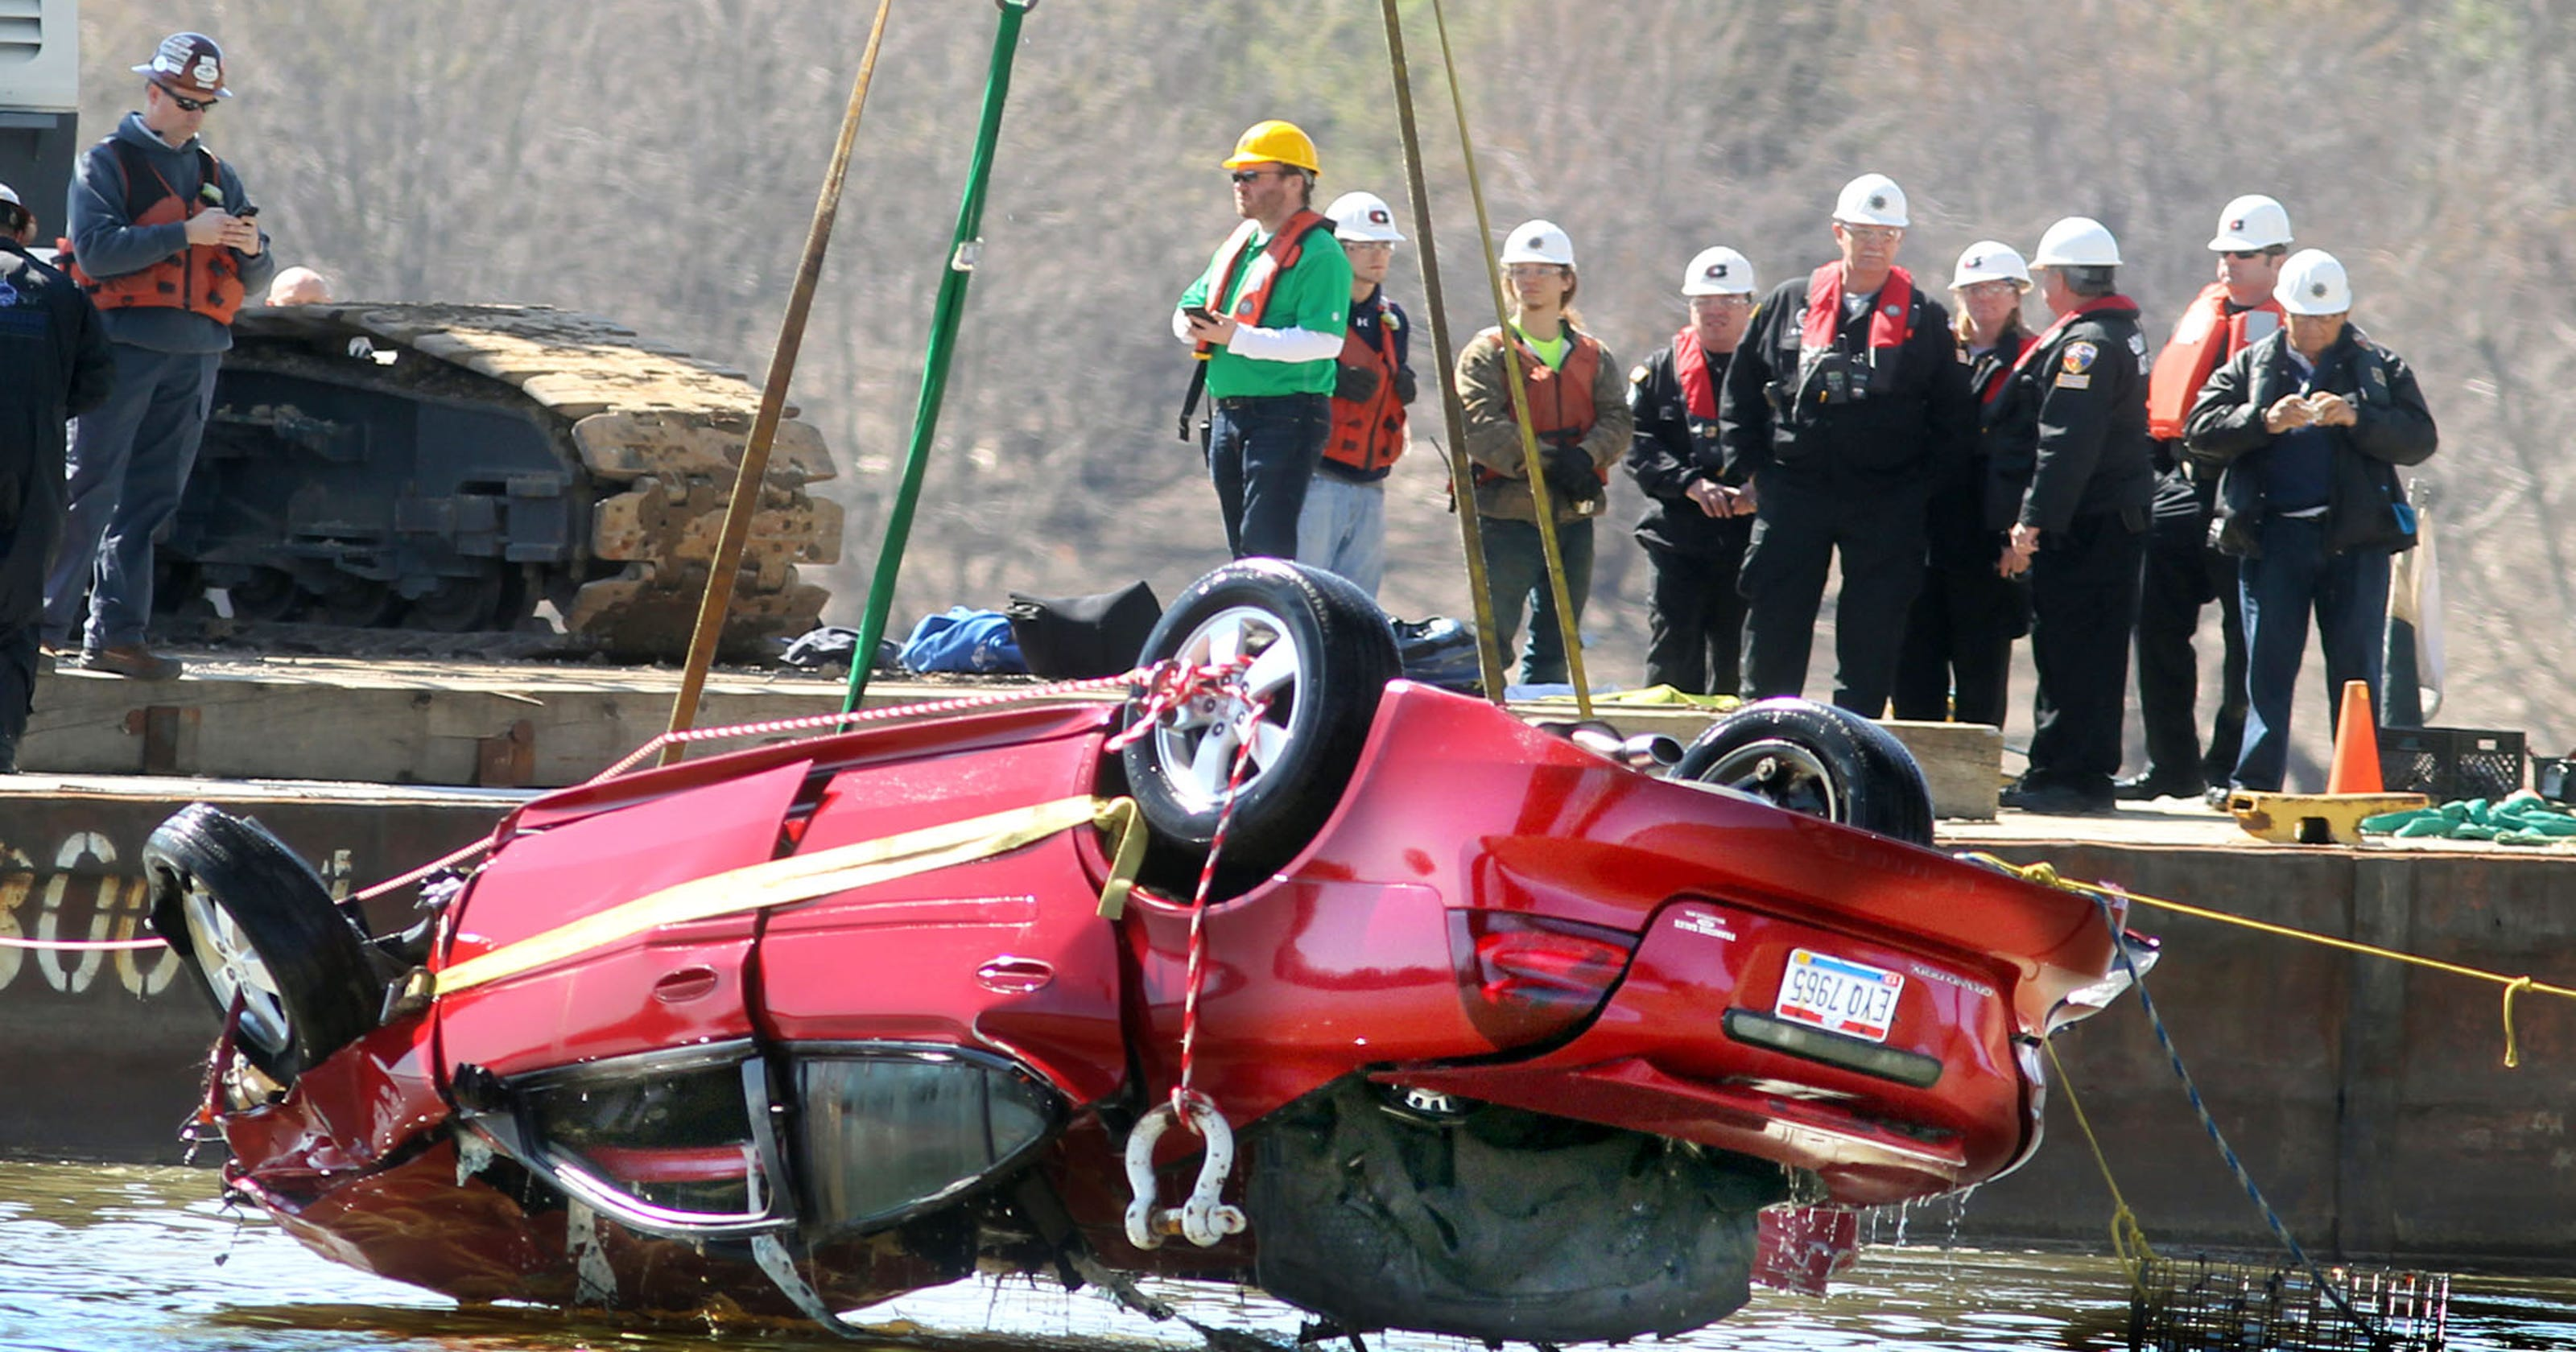 Officials ID man recovered from car that fell into Ohio River